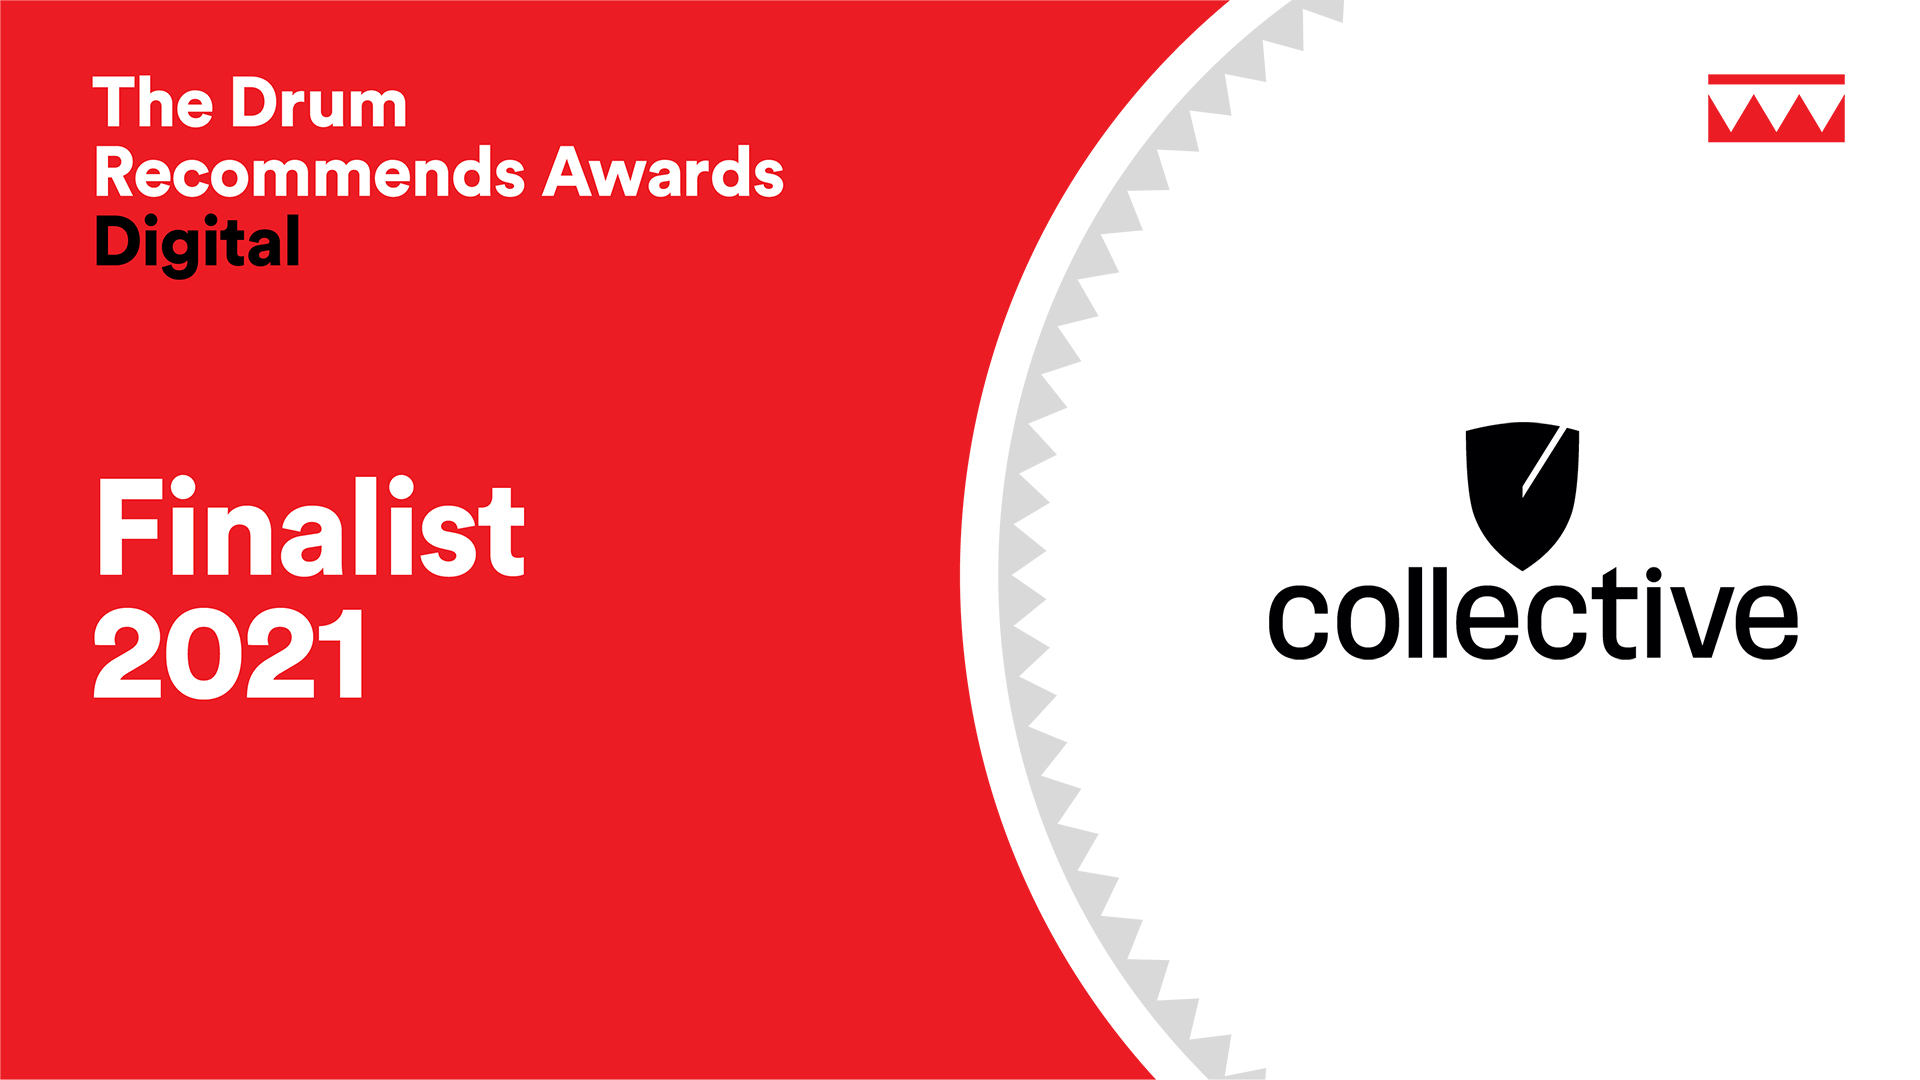 Collective Are The Drum Recommends Awards Finalists